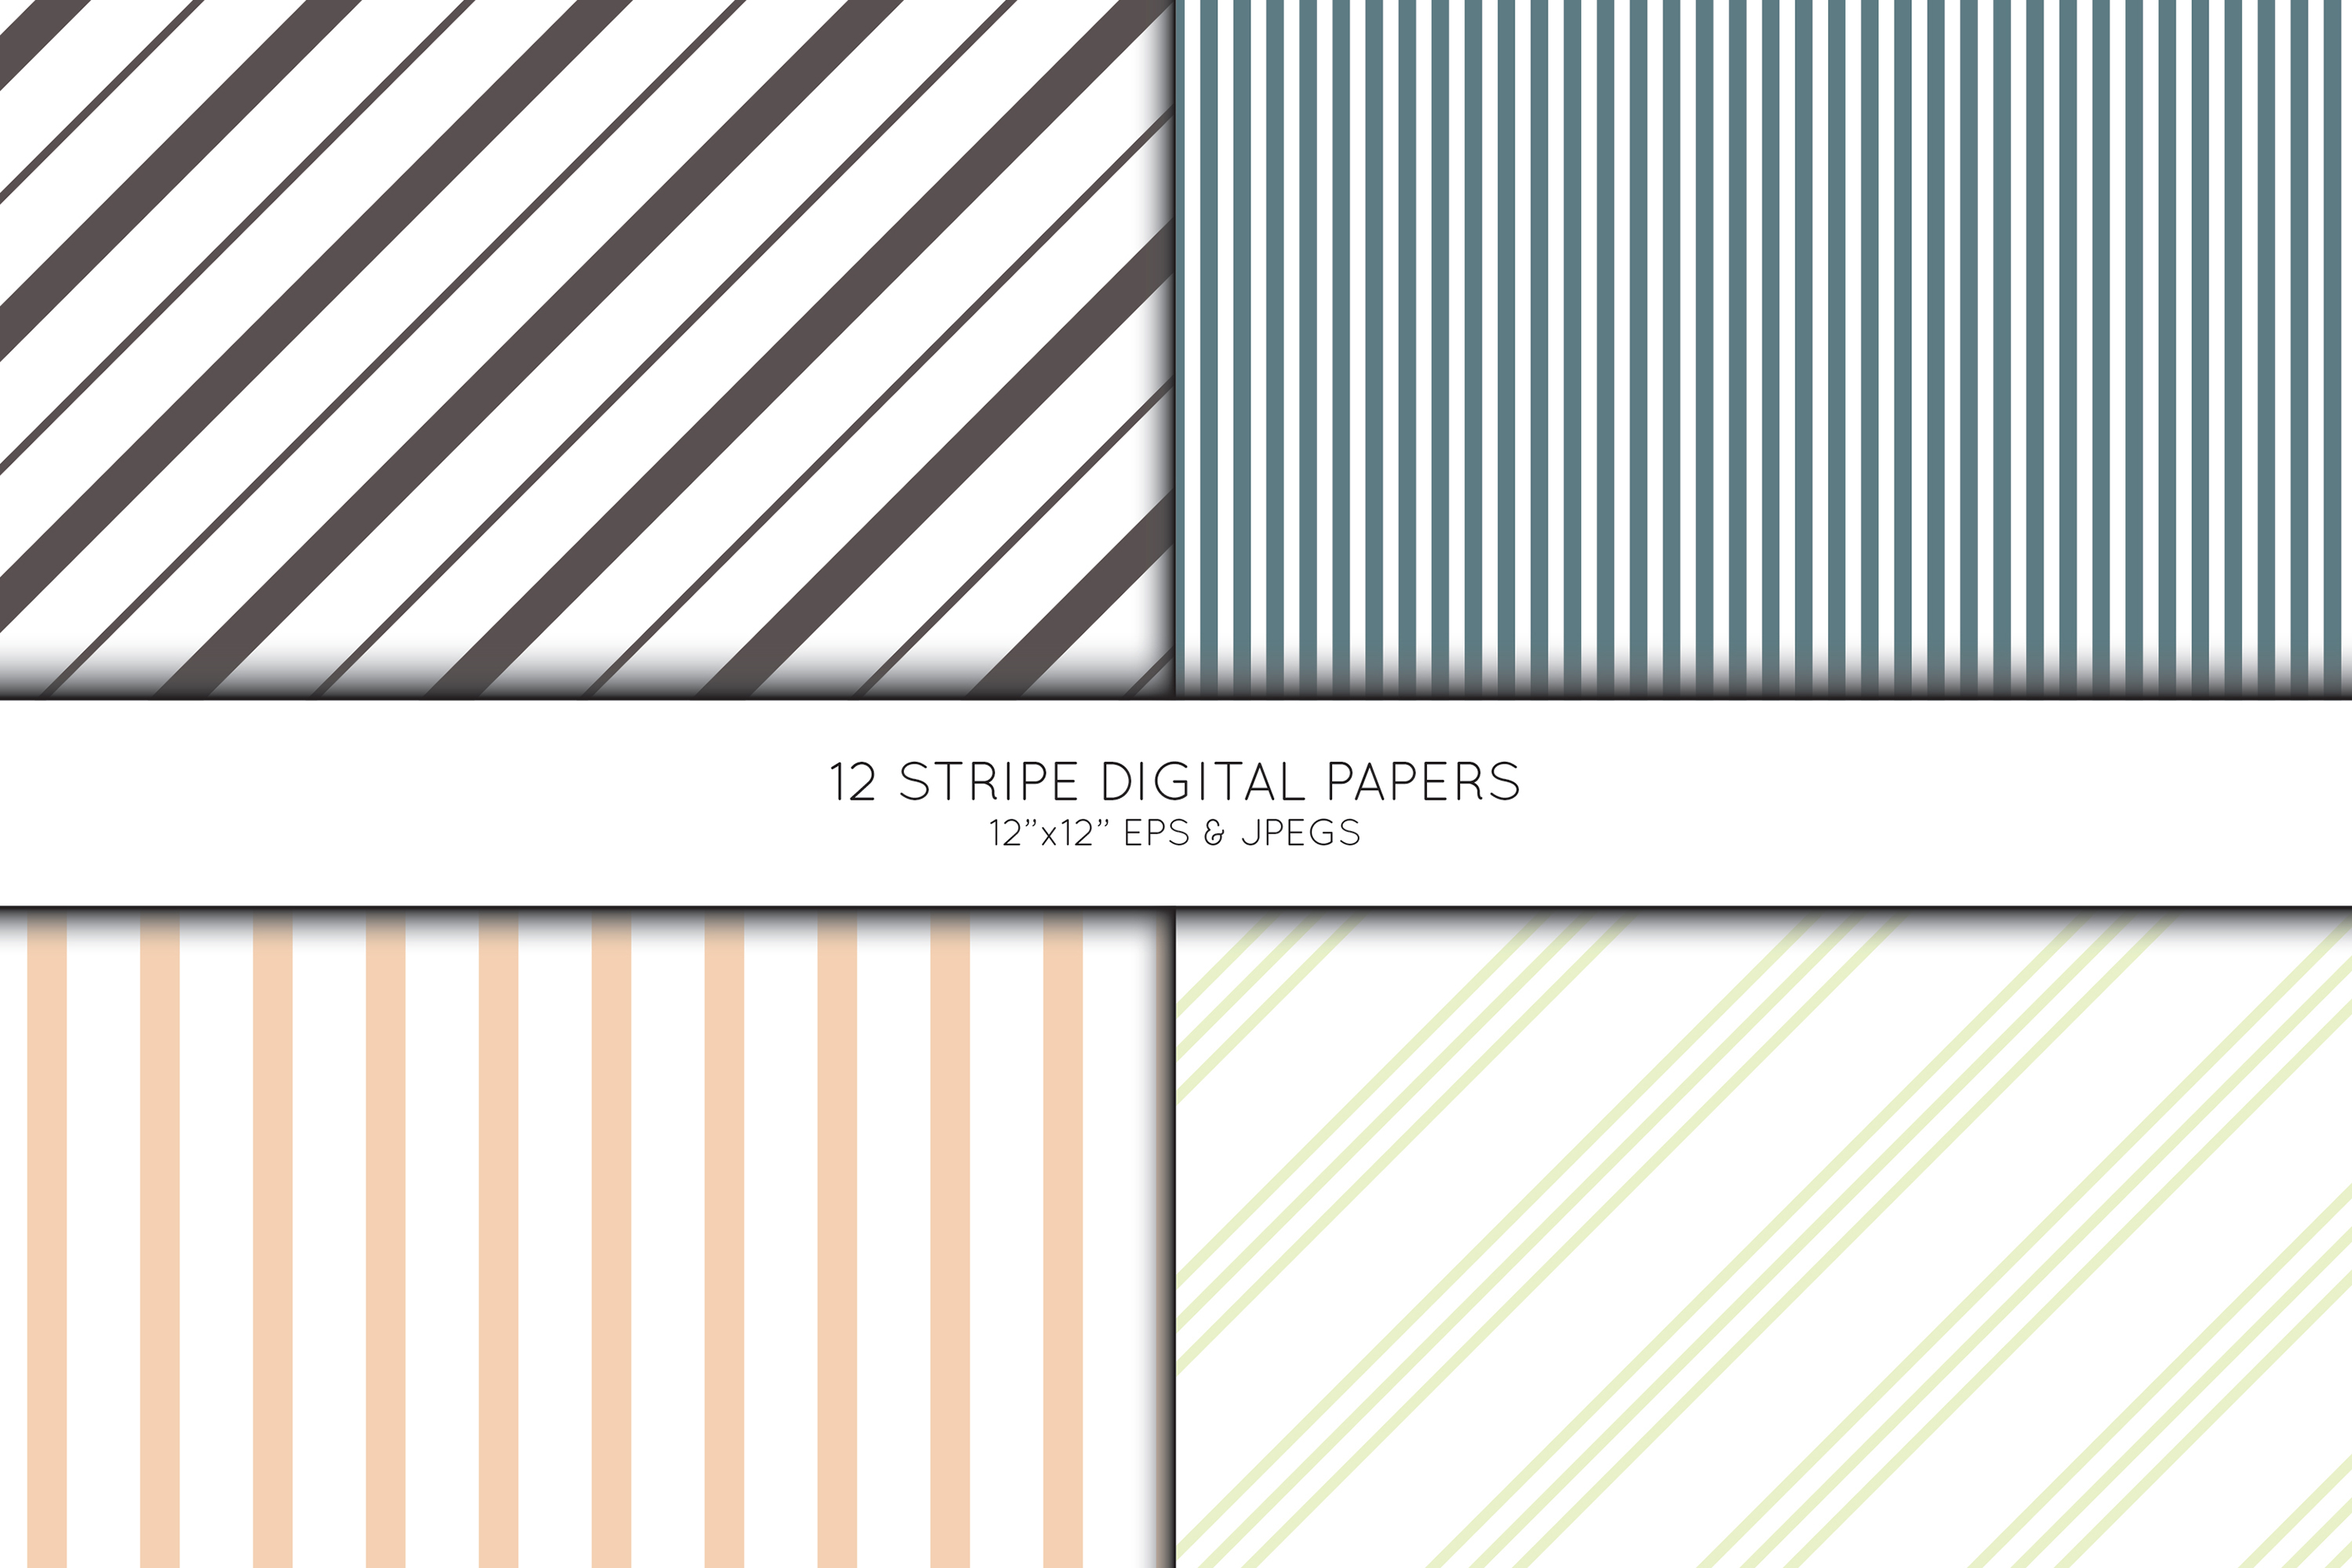 Stripe Digital Paper, Striped Scrapbook paper example image 2